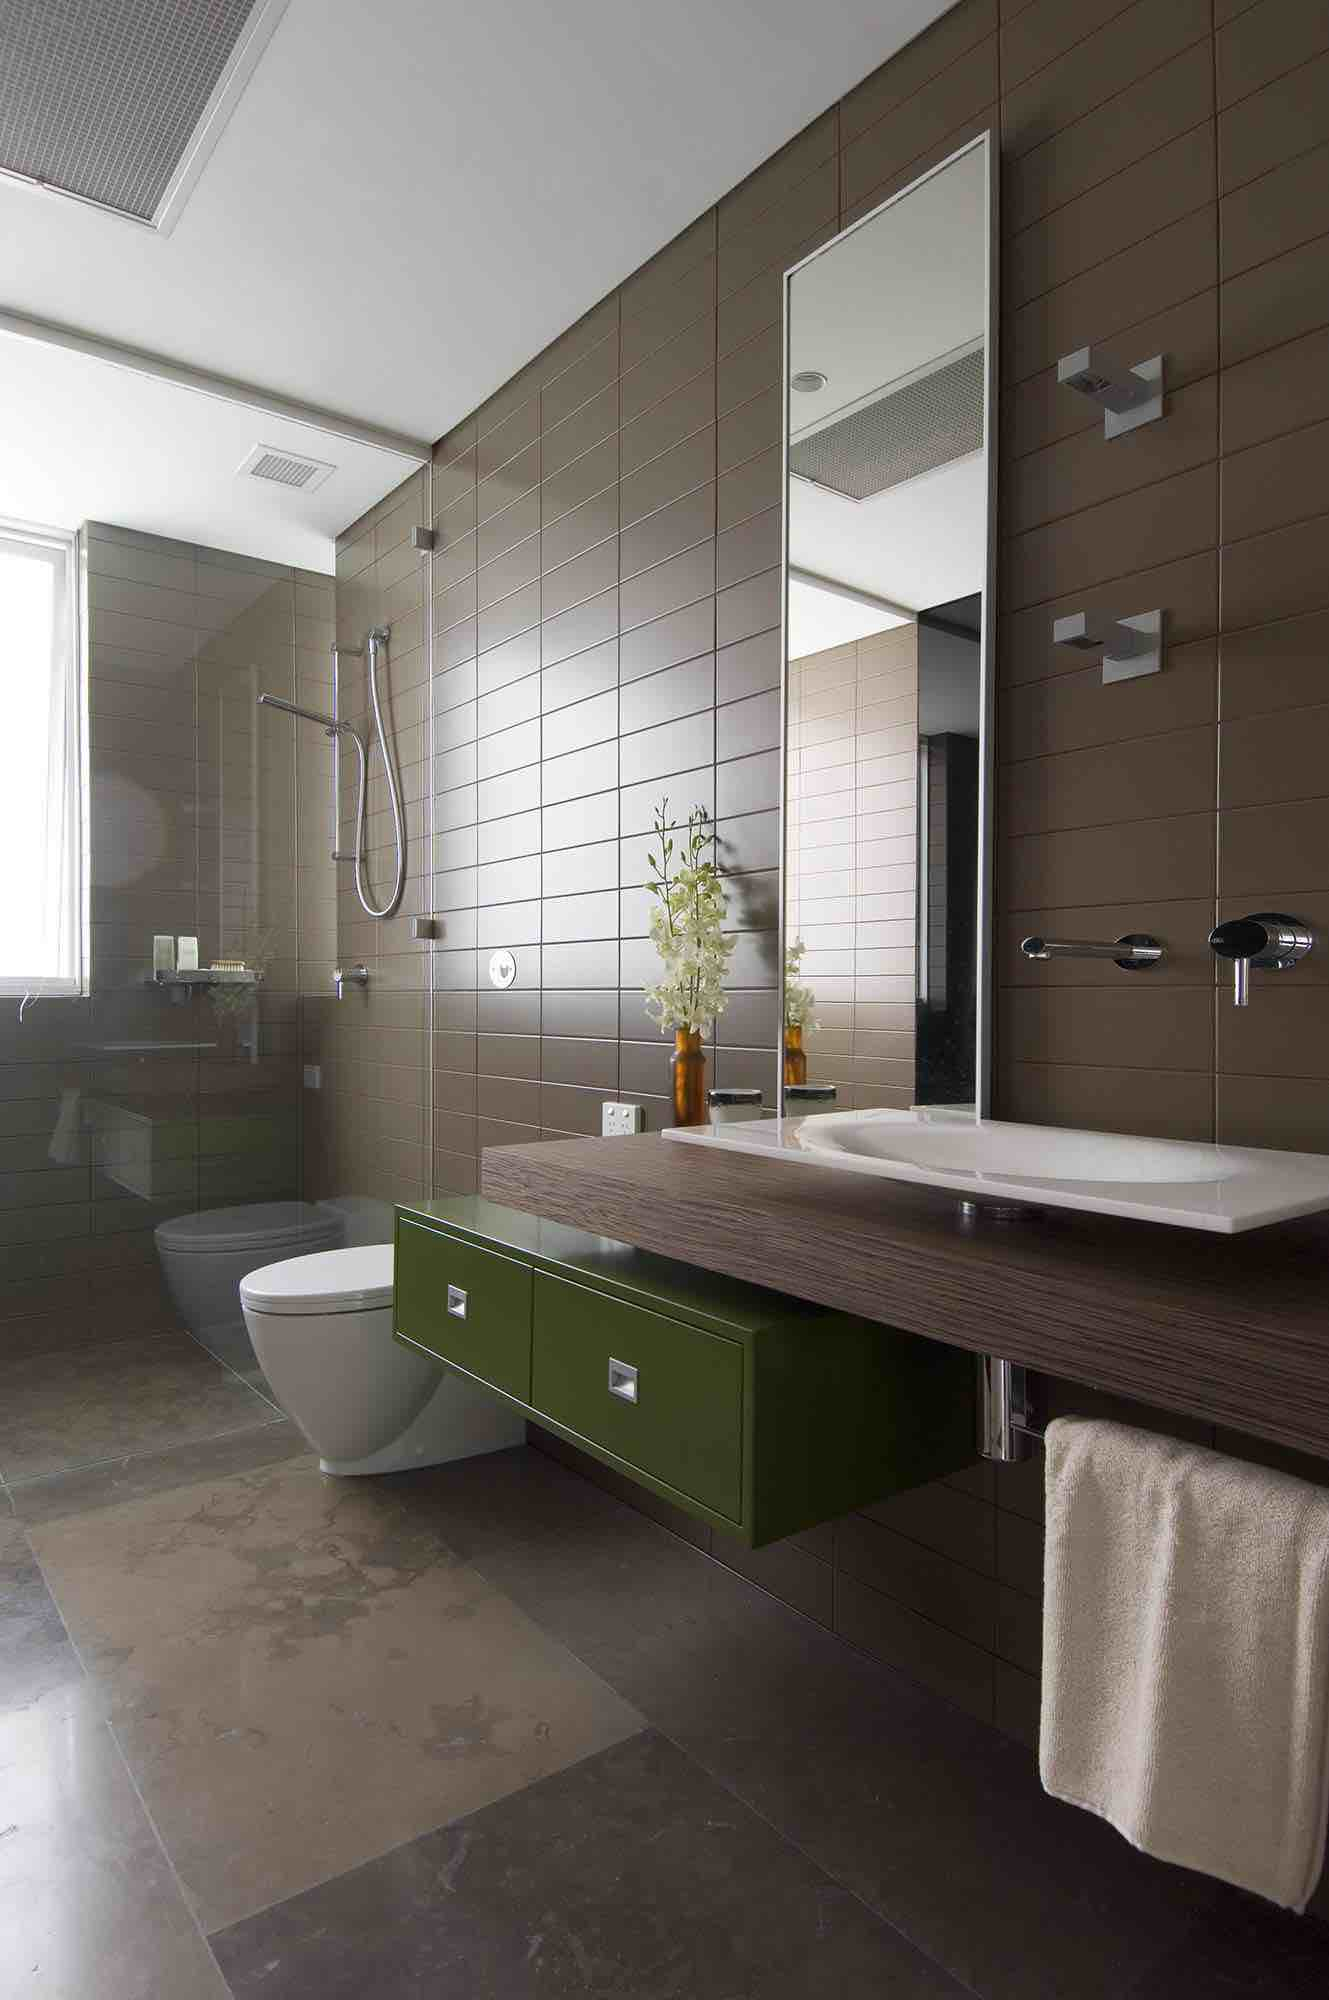 minosa-design-modern-bathroom-floating-vanity-portlans-st-bathroom-puddle-gessi-ovale-dover-heights-01